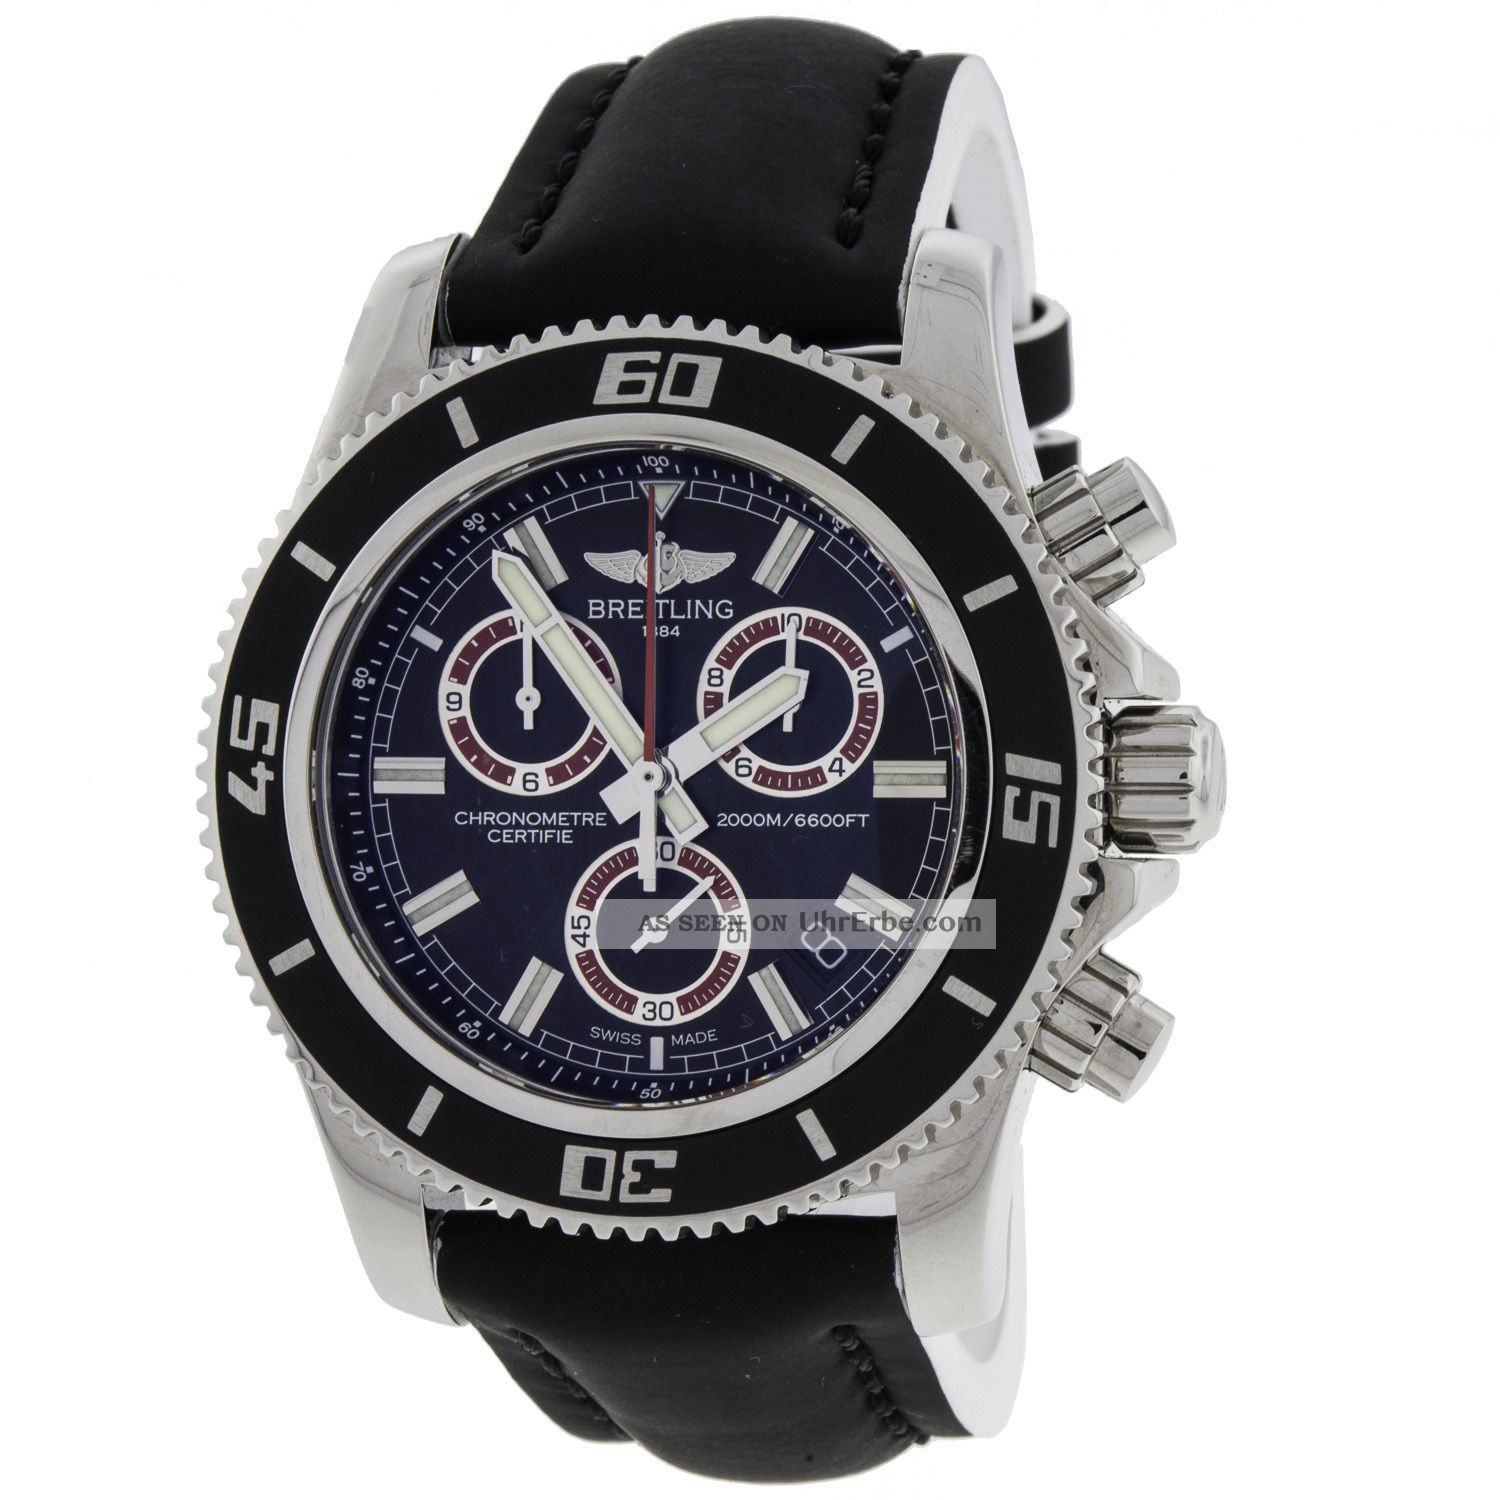 armbanduhr herren breitling a73310 superocean chronograph. Black Bedroom Furniture Sets. Home Design Ideas